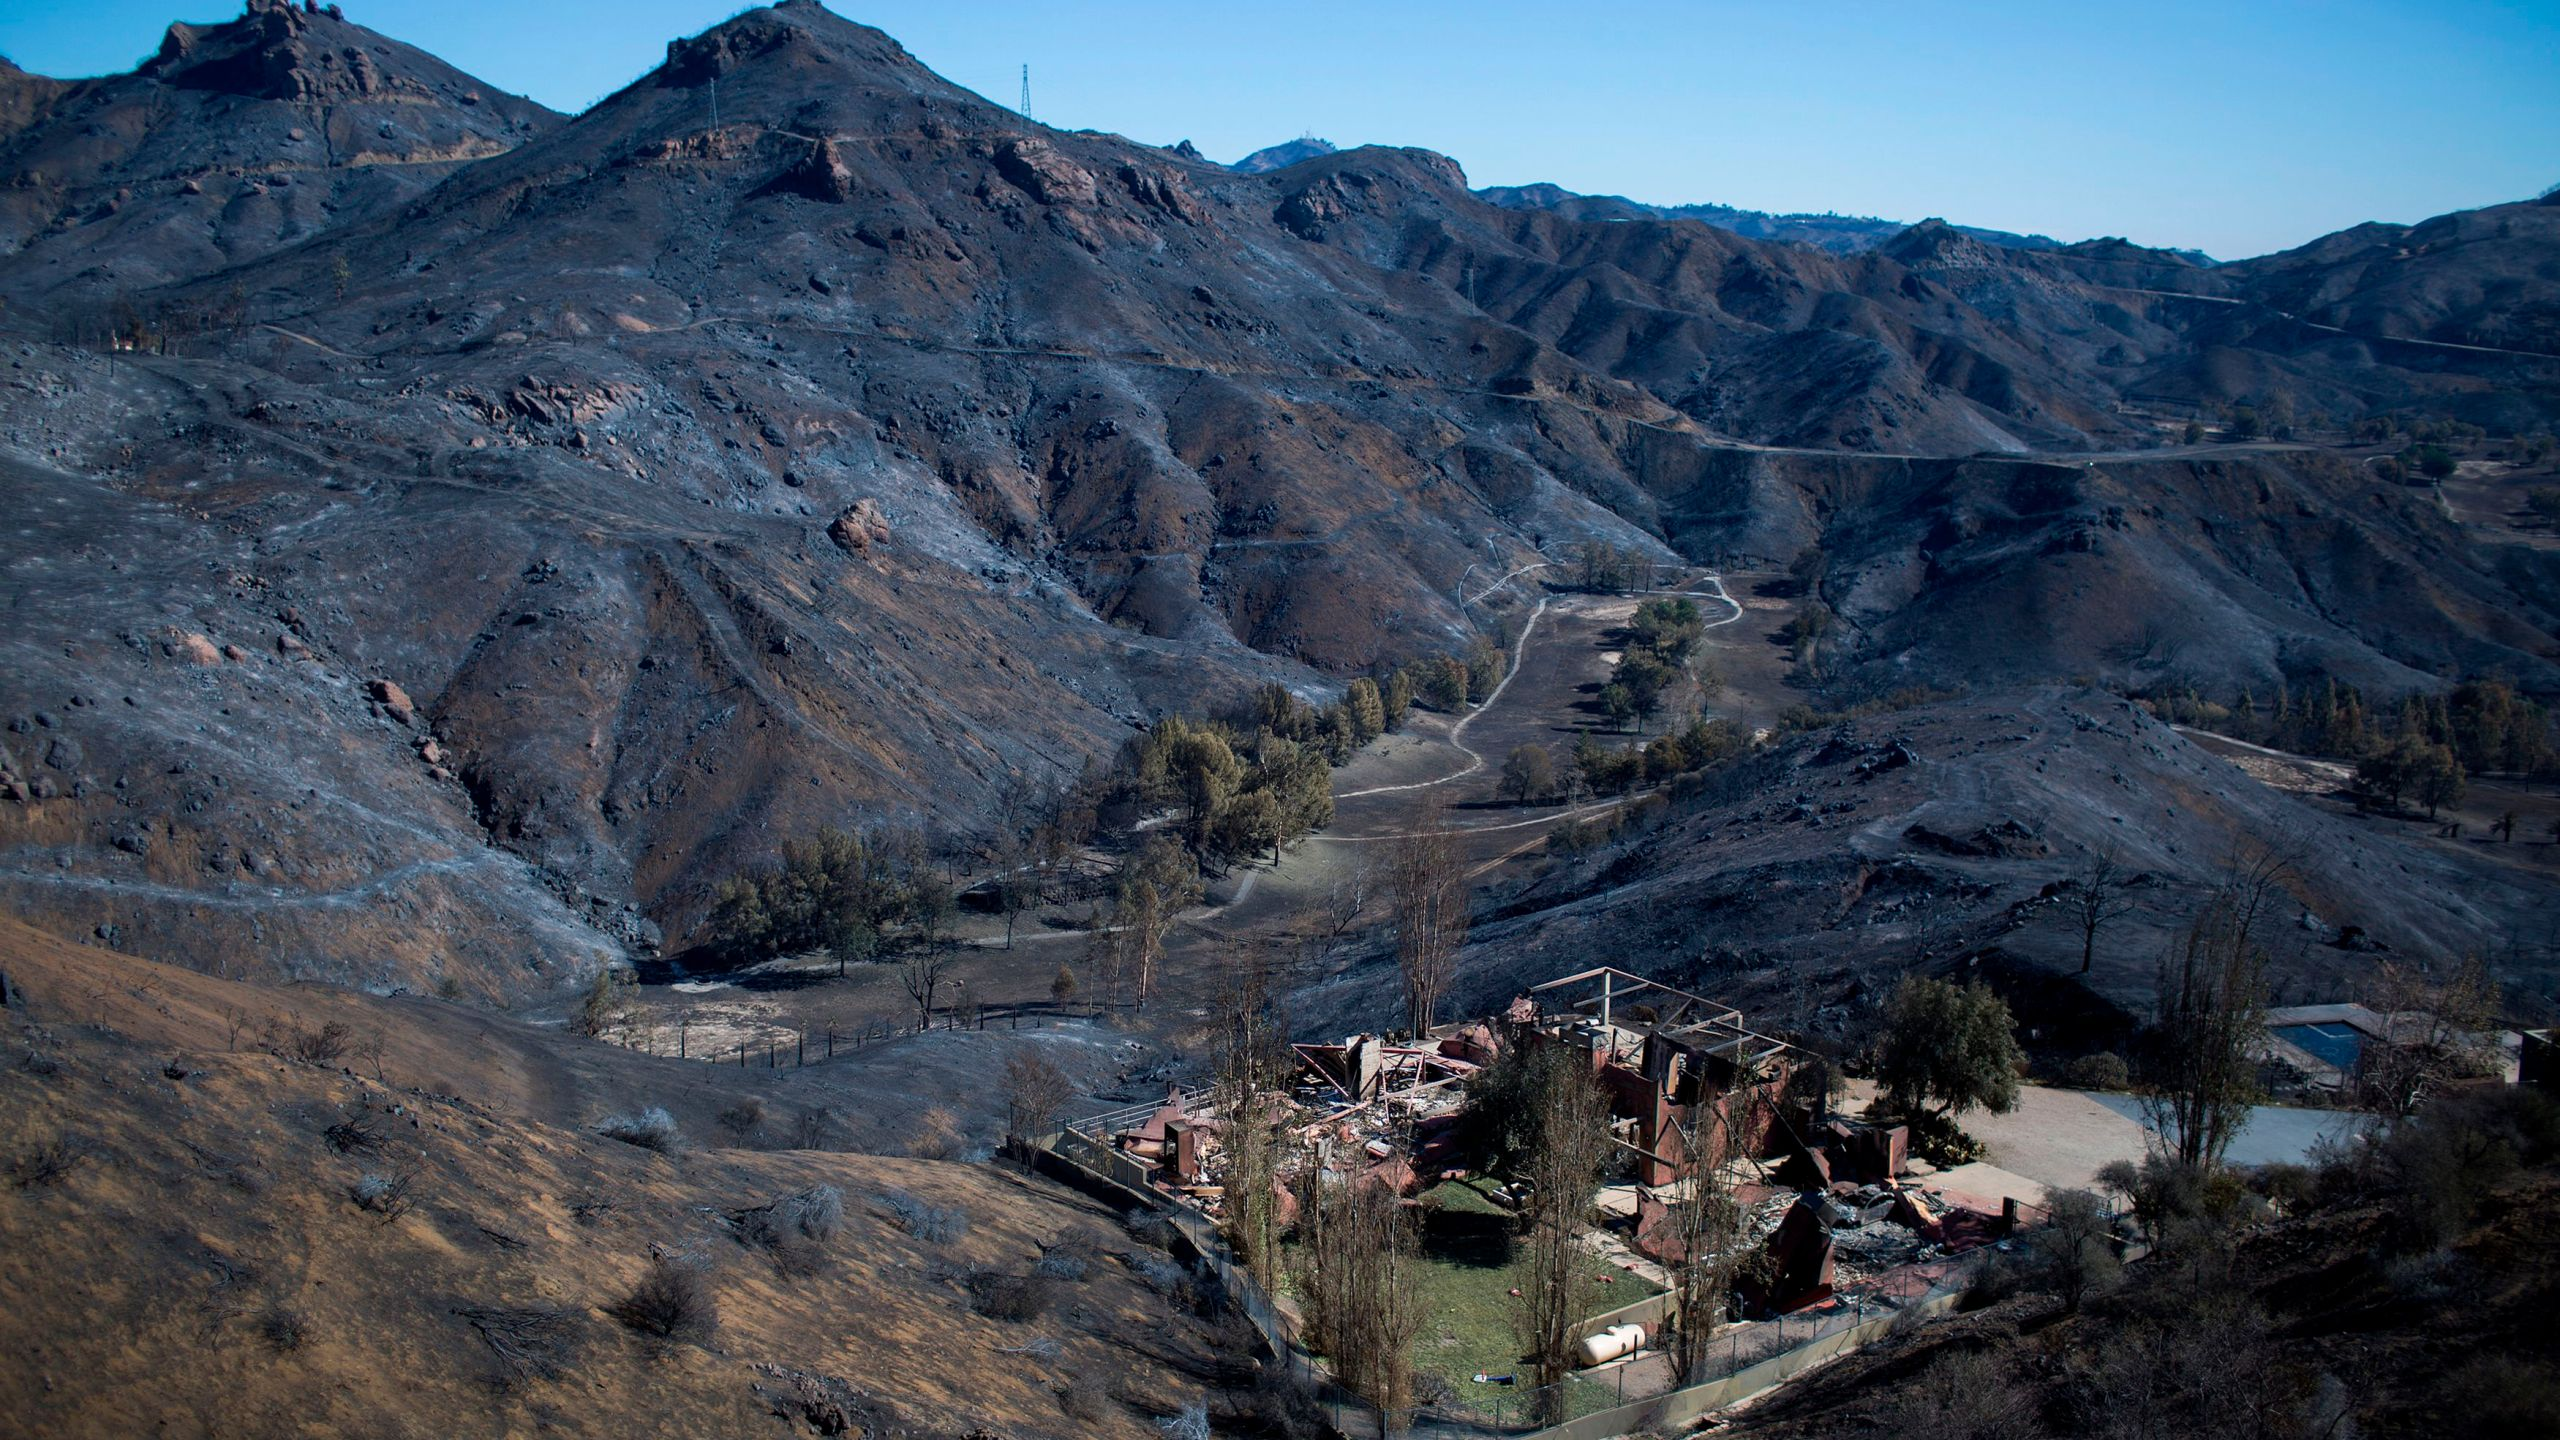 The Santa Monica Mountains are seen left blackened by the Woolsey Fire near Malibu on Nov. 14, 2018. (David McNew / AFP / Getty Images)